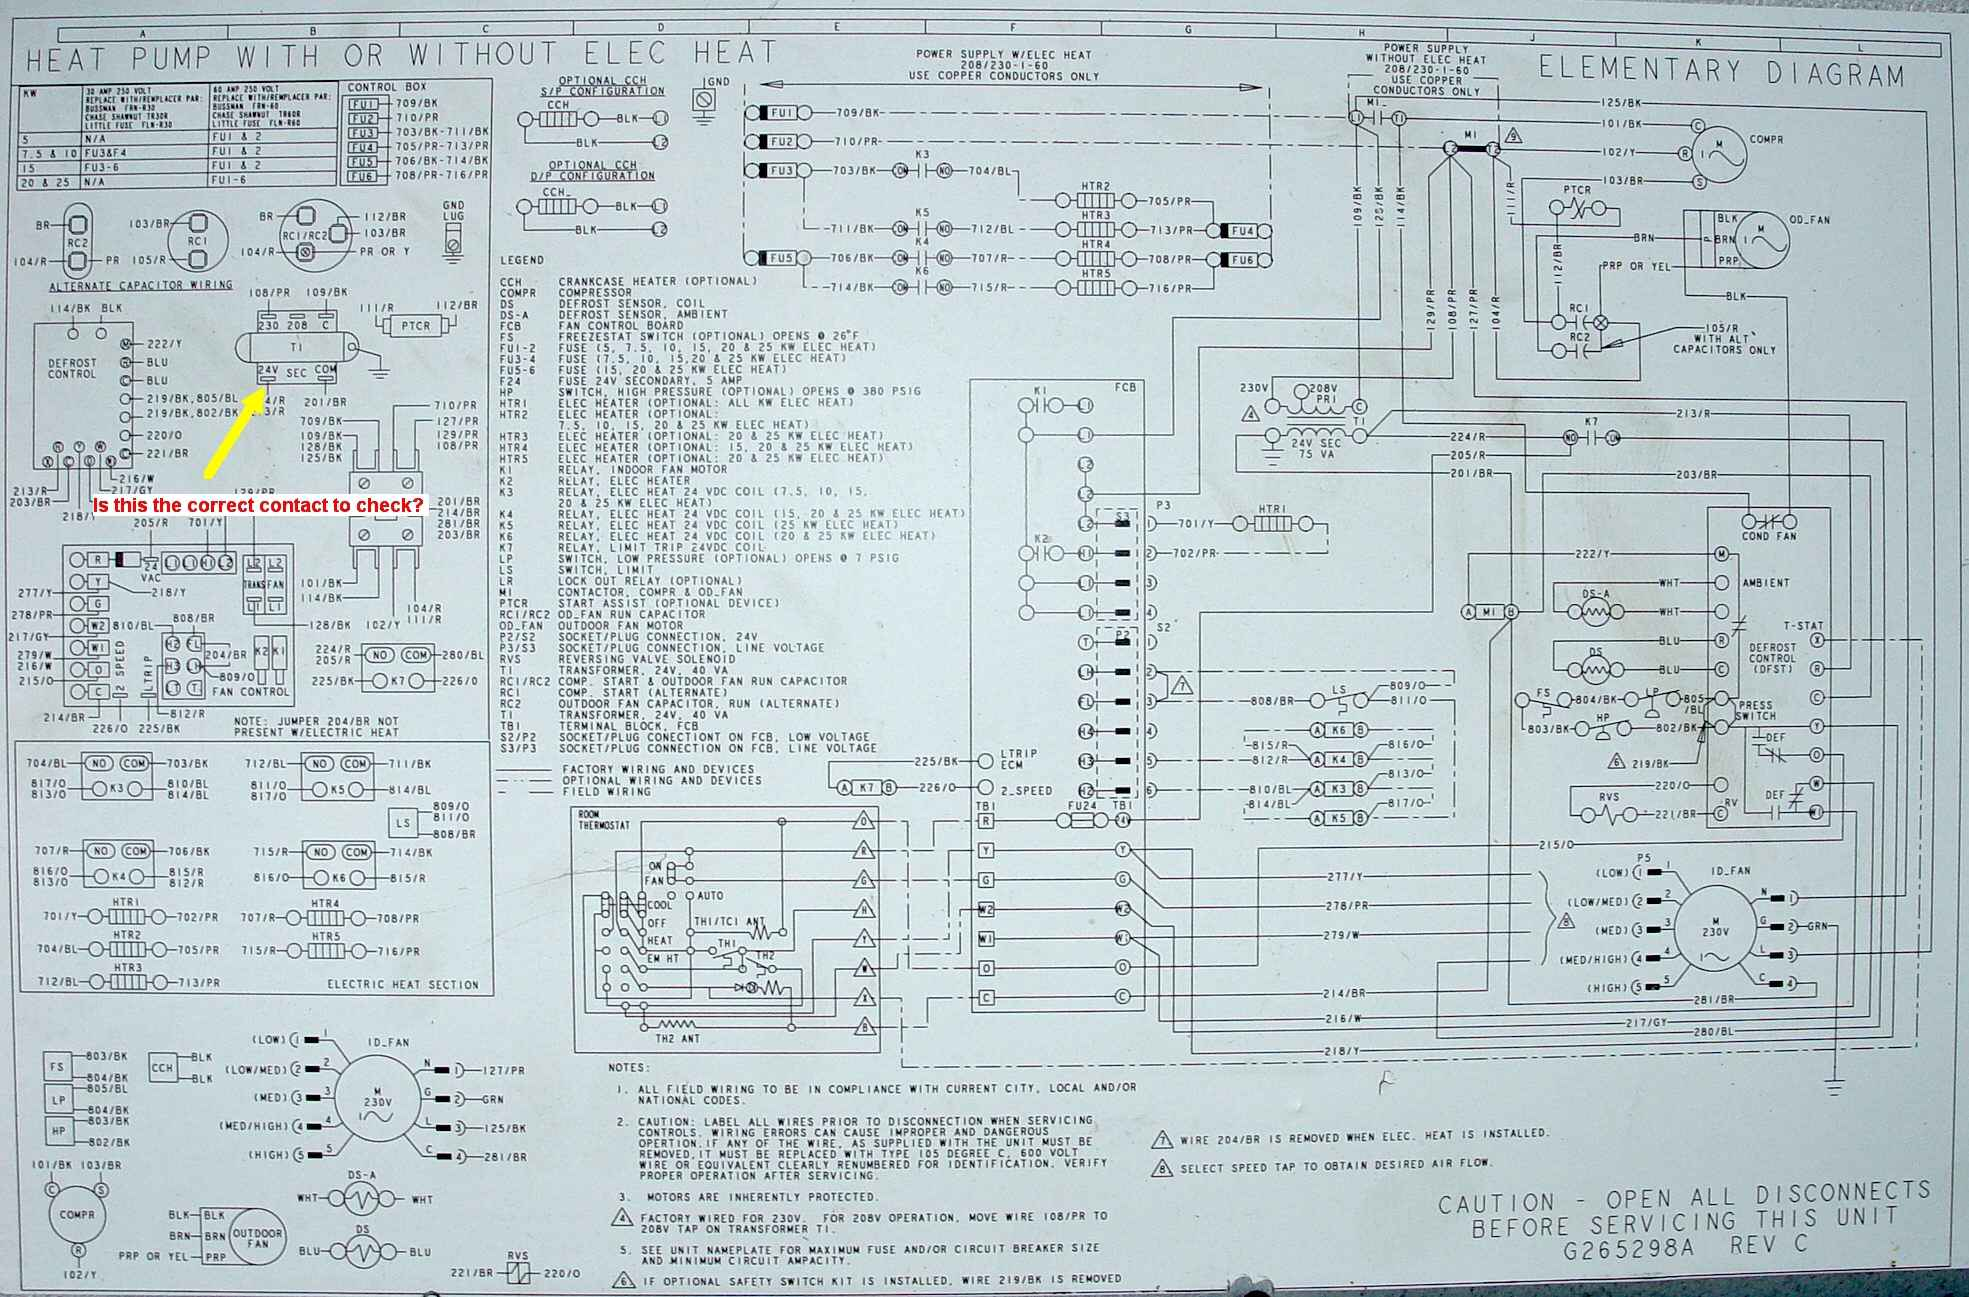 york wiring diagram manual guide wiring diagram \u2022 york heat pump parts diagram york defrost board wiring diagram york free engine image for user manual download york wiring diagram